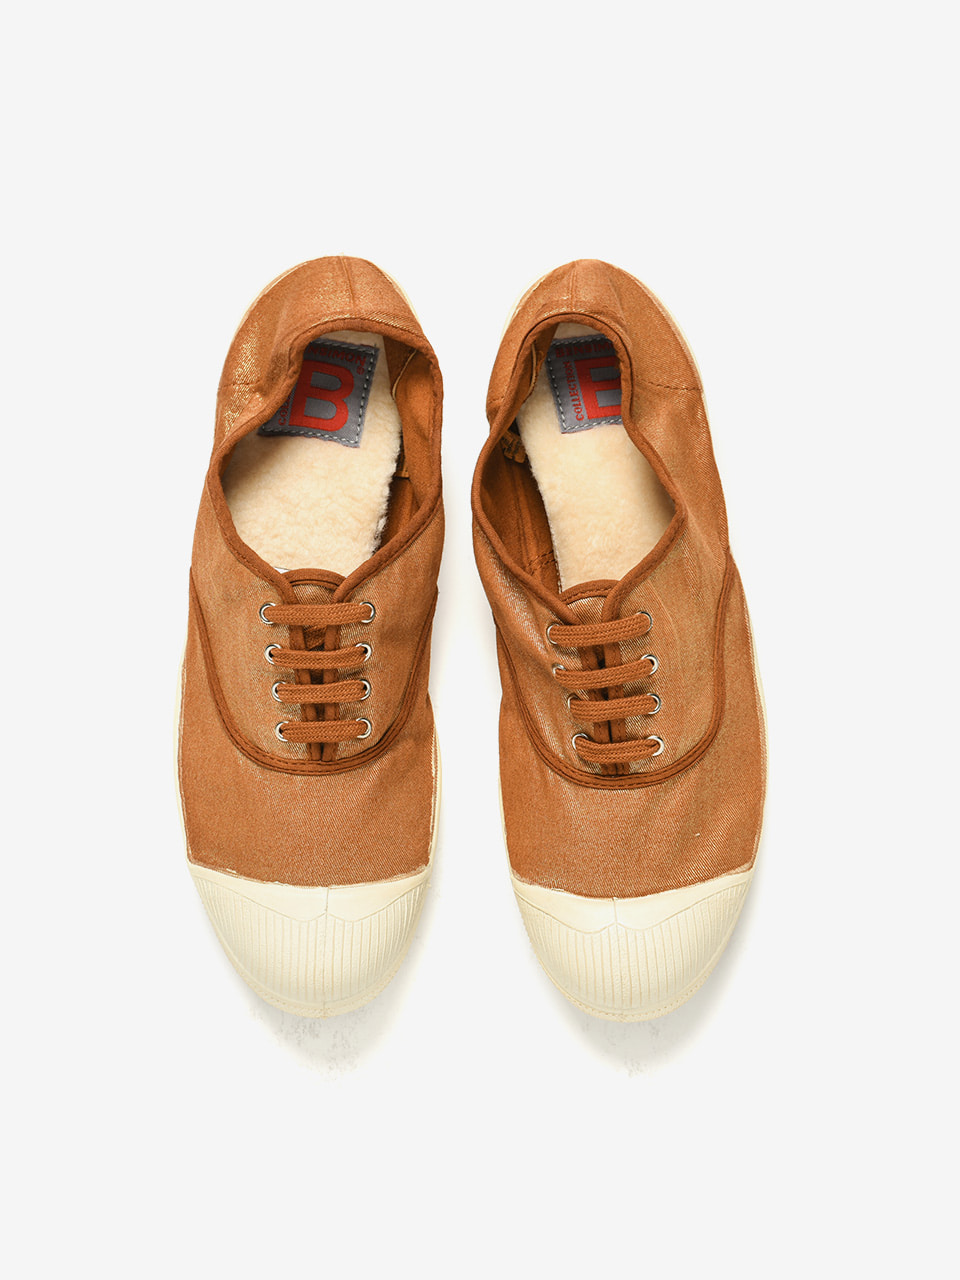 [Woman Tennis Lacet Lurex Limited] Caramel